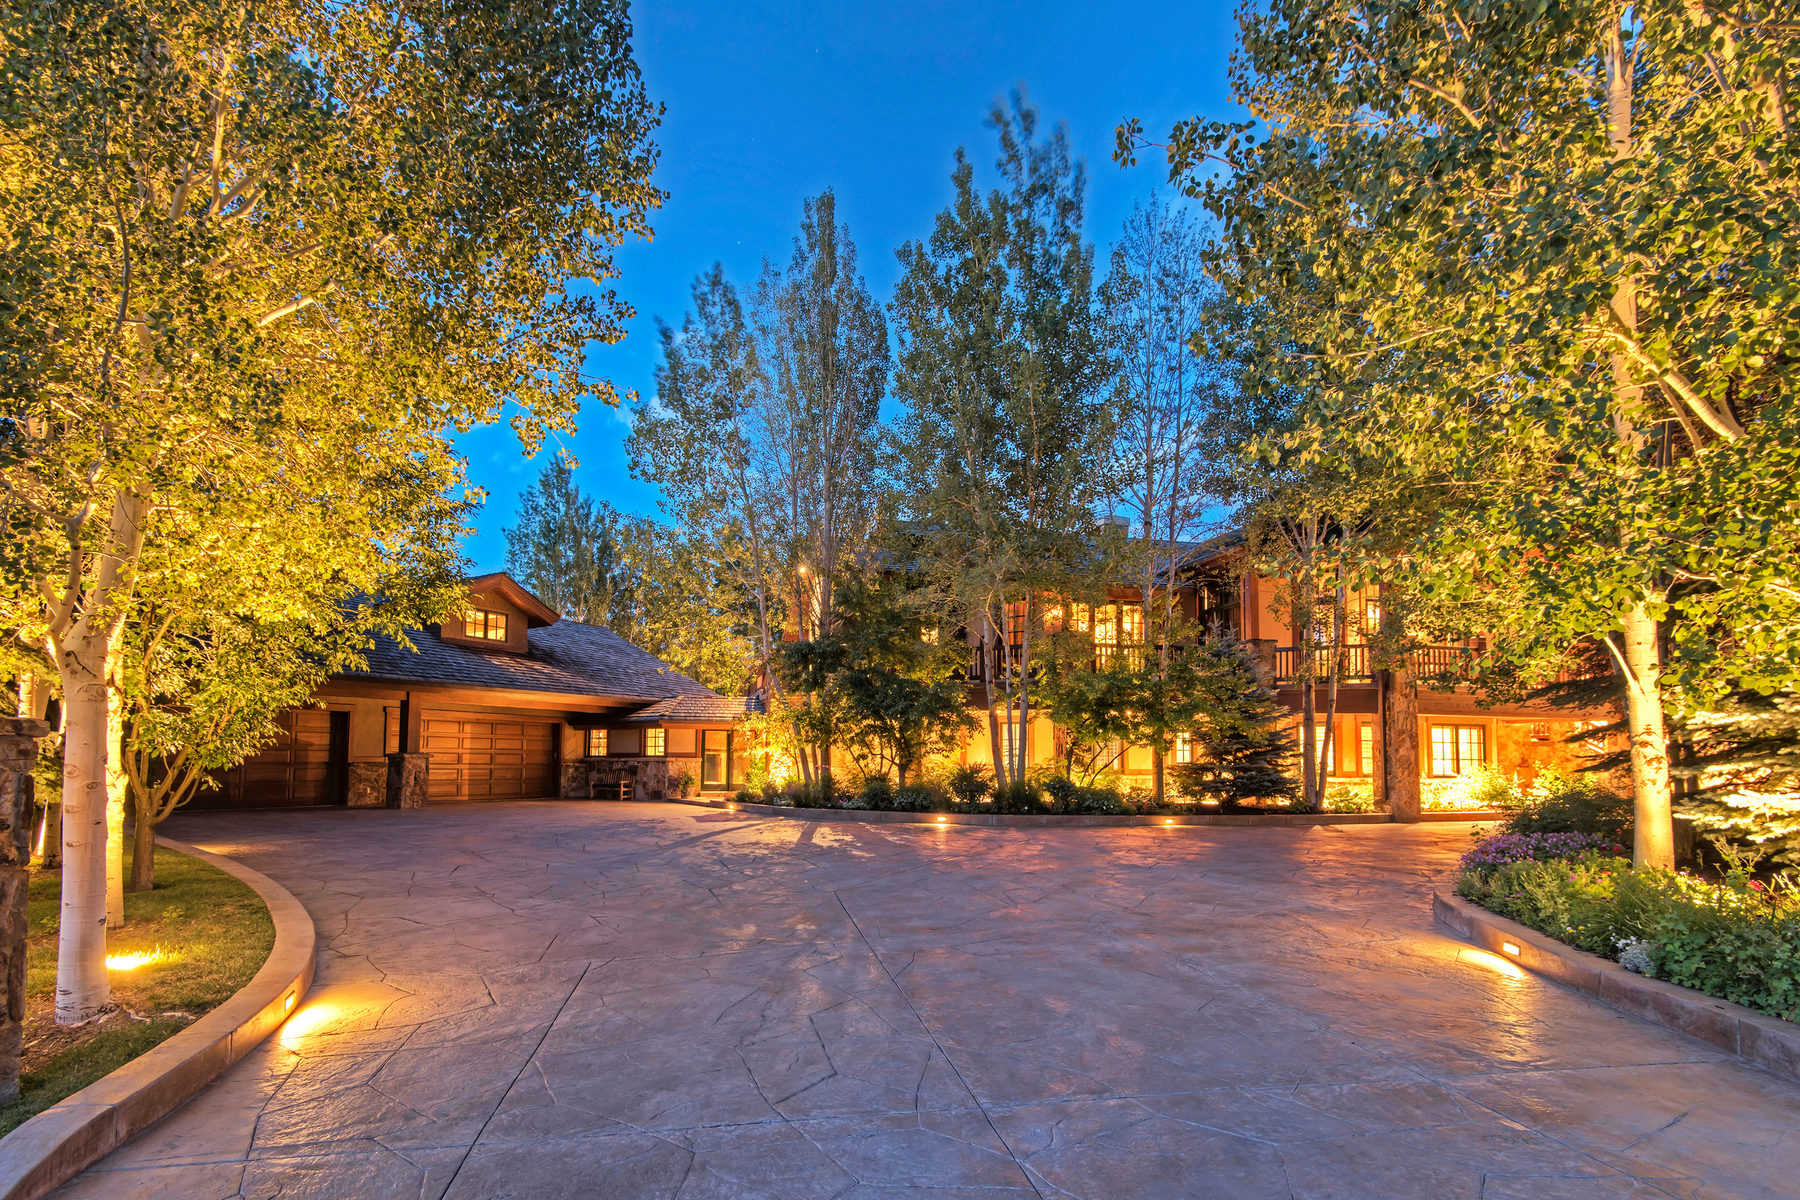 Single Family Home for Sale at Stunning Park Meadows Estate on over 2.5 Acres 2300 Lucky John Dr Park City, Utah, 84060 United States